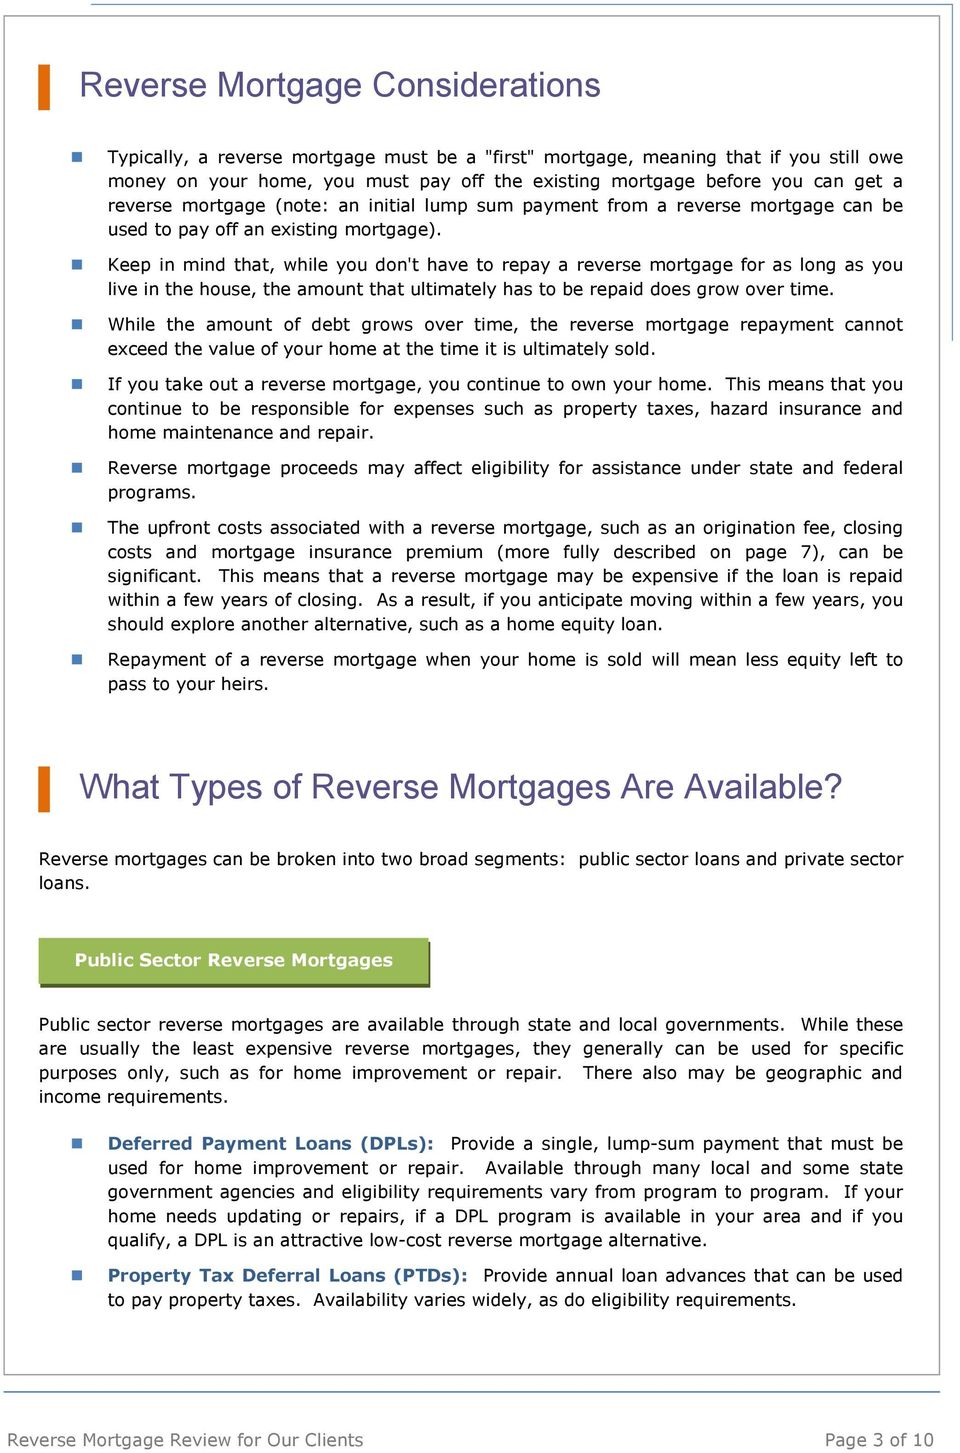 Keep in mind that, while you don't have to repay a reverse mortgage for as long as you live in the house, the amount that ultimately has to be repaid does grow over time.